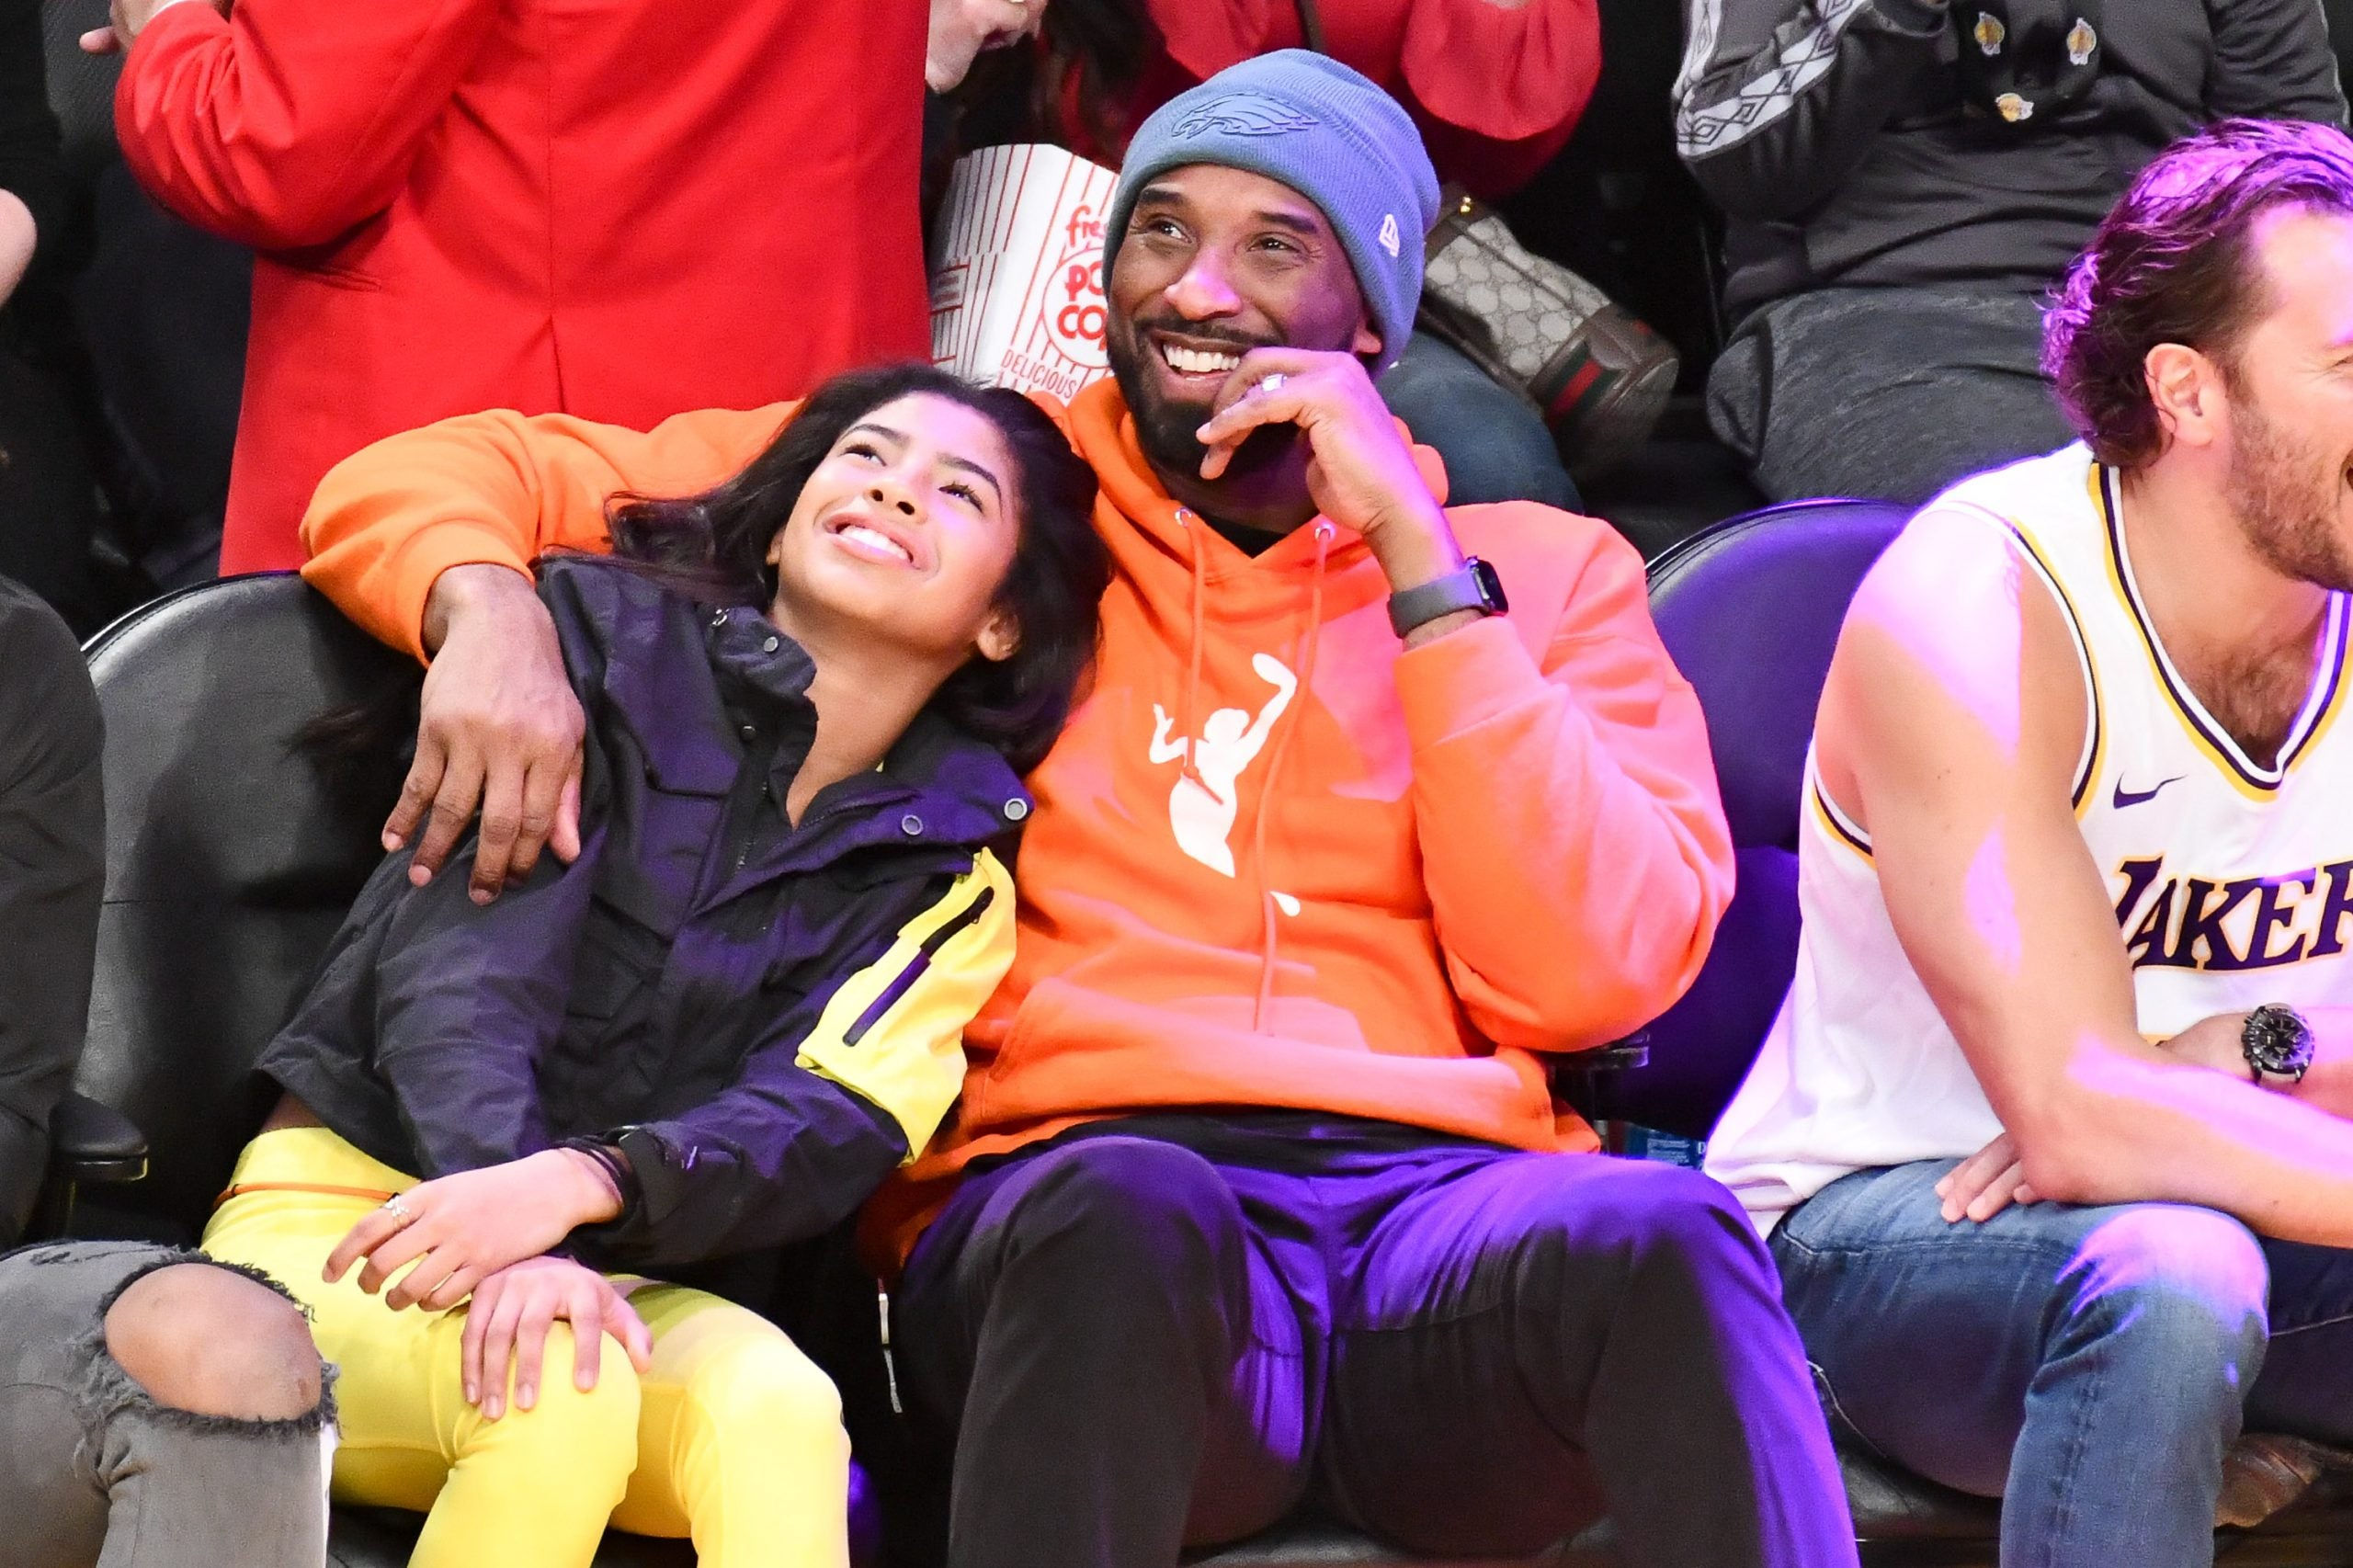 24 Photos Of Kobe Bryant, The Father And Family Man